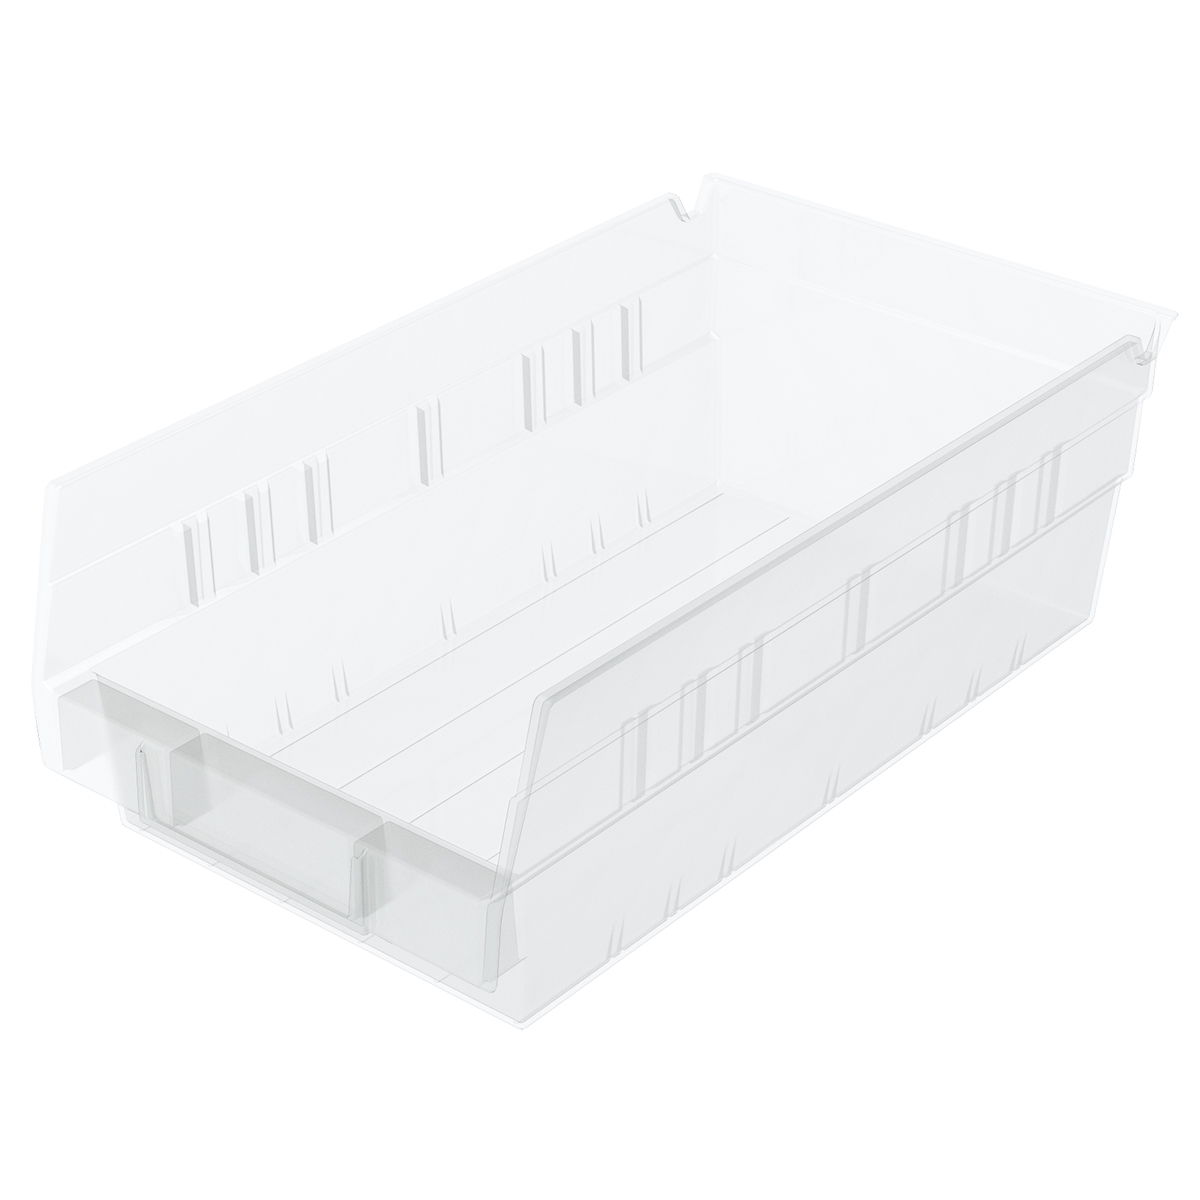 Shelf Bin 11-5/8 x 6-5/8 x 4, Clear (30130SCLAR).  This item sold in carton quantities of 12.